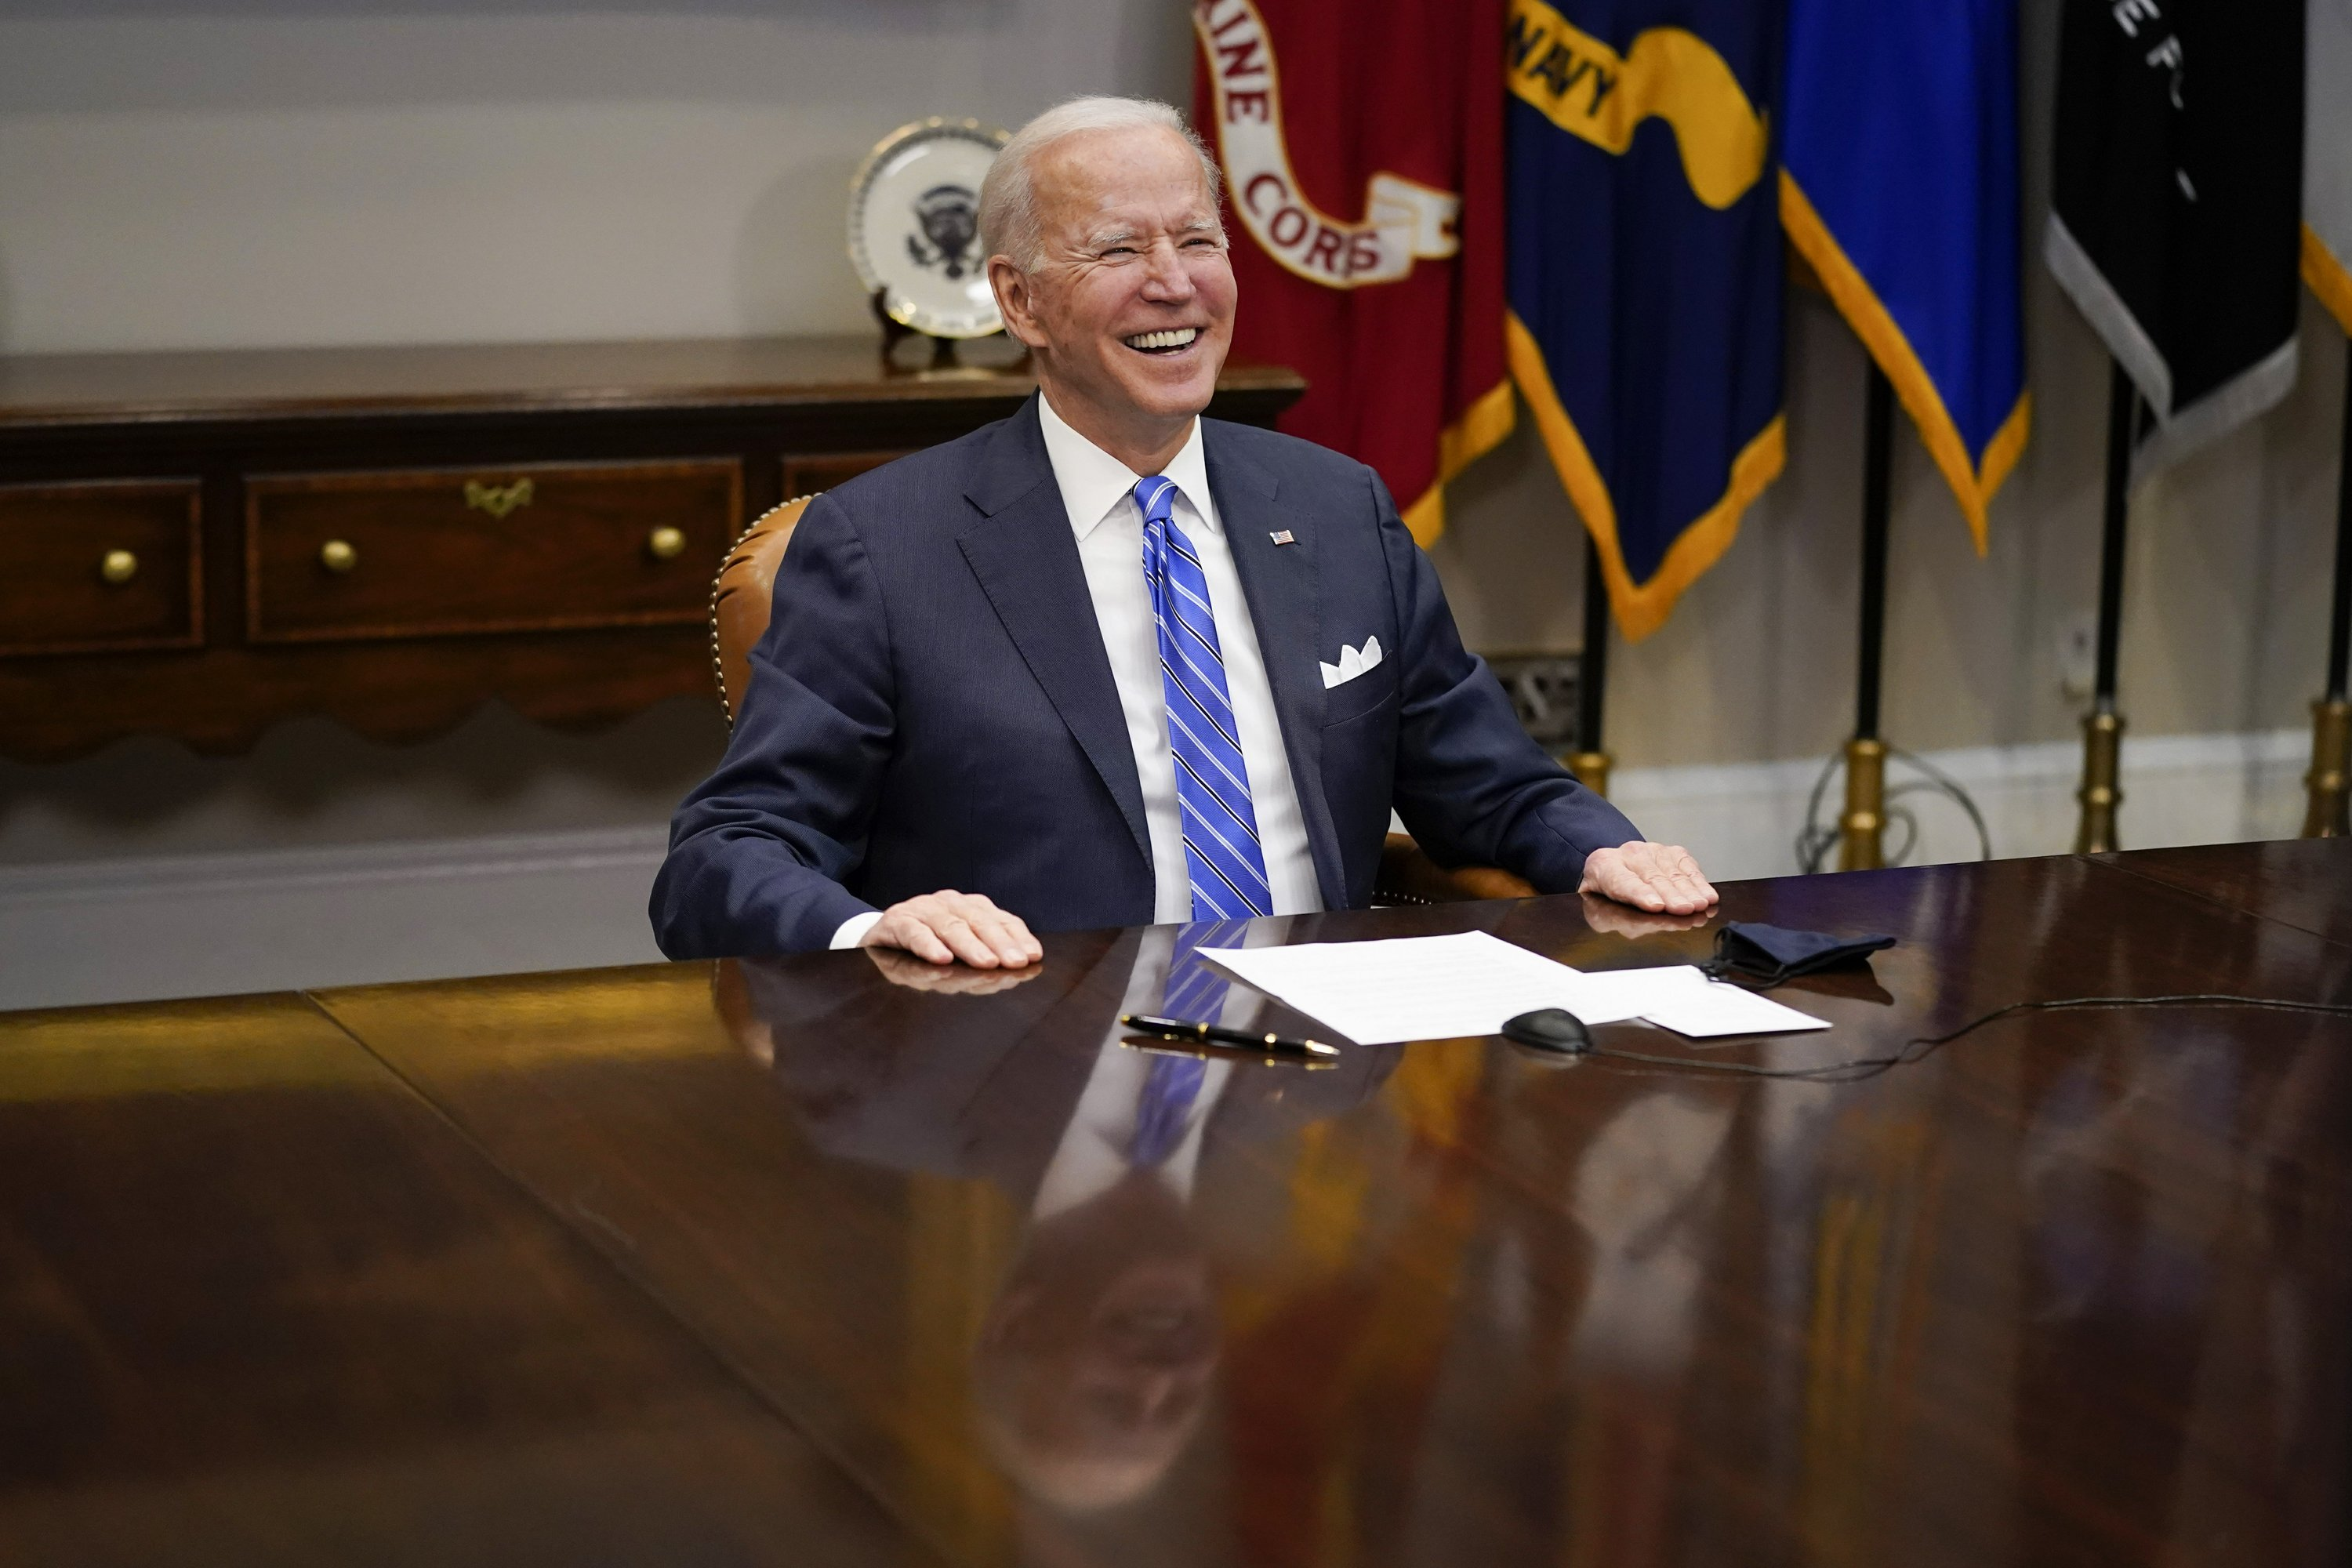 Biden lauds NASA team for giving US 'dose of confidence' - The Associated Press